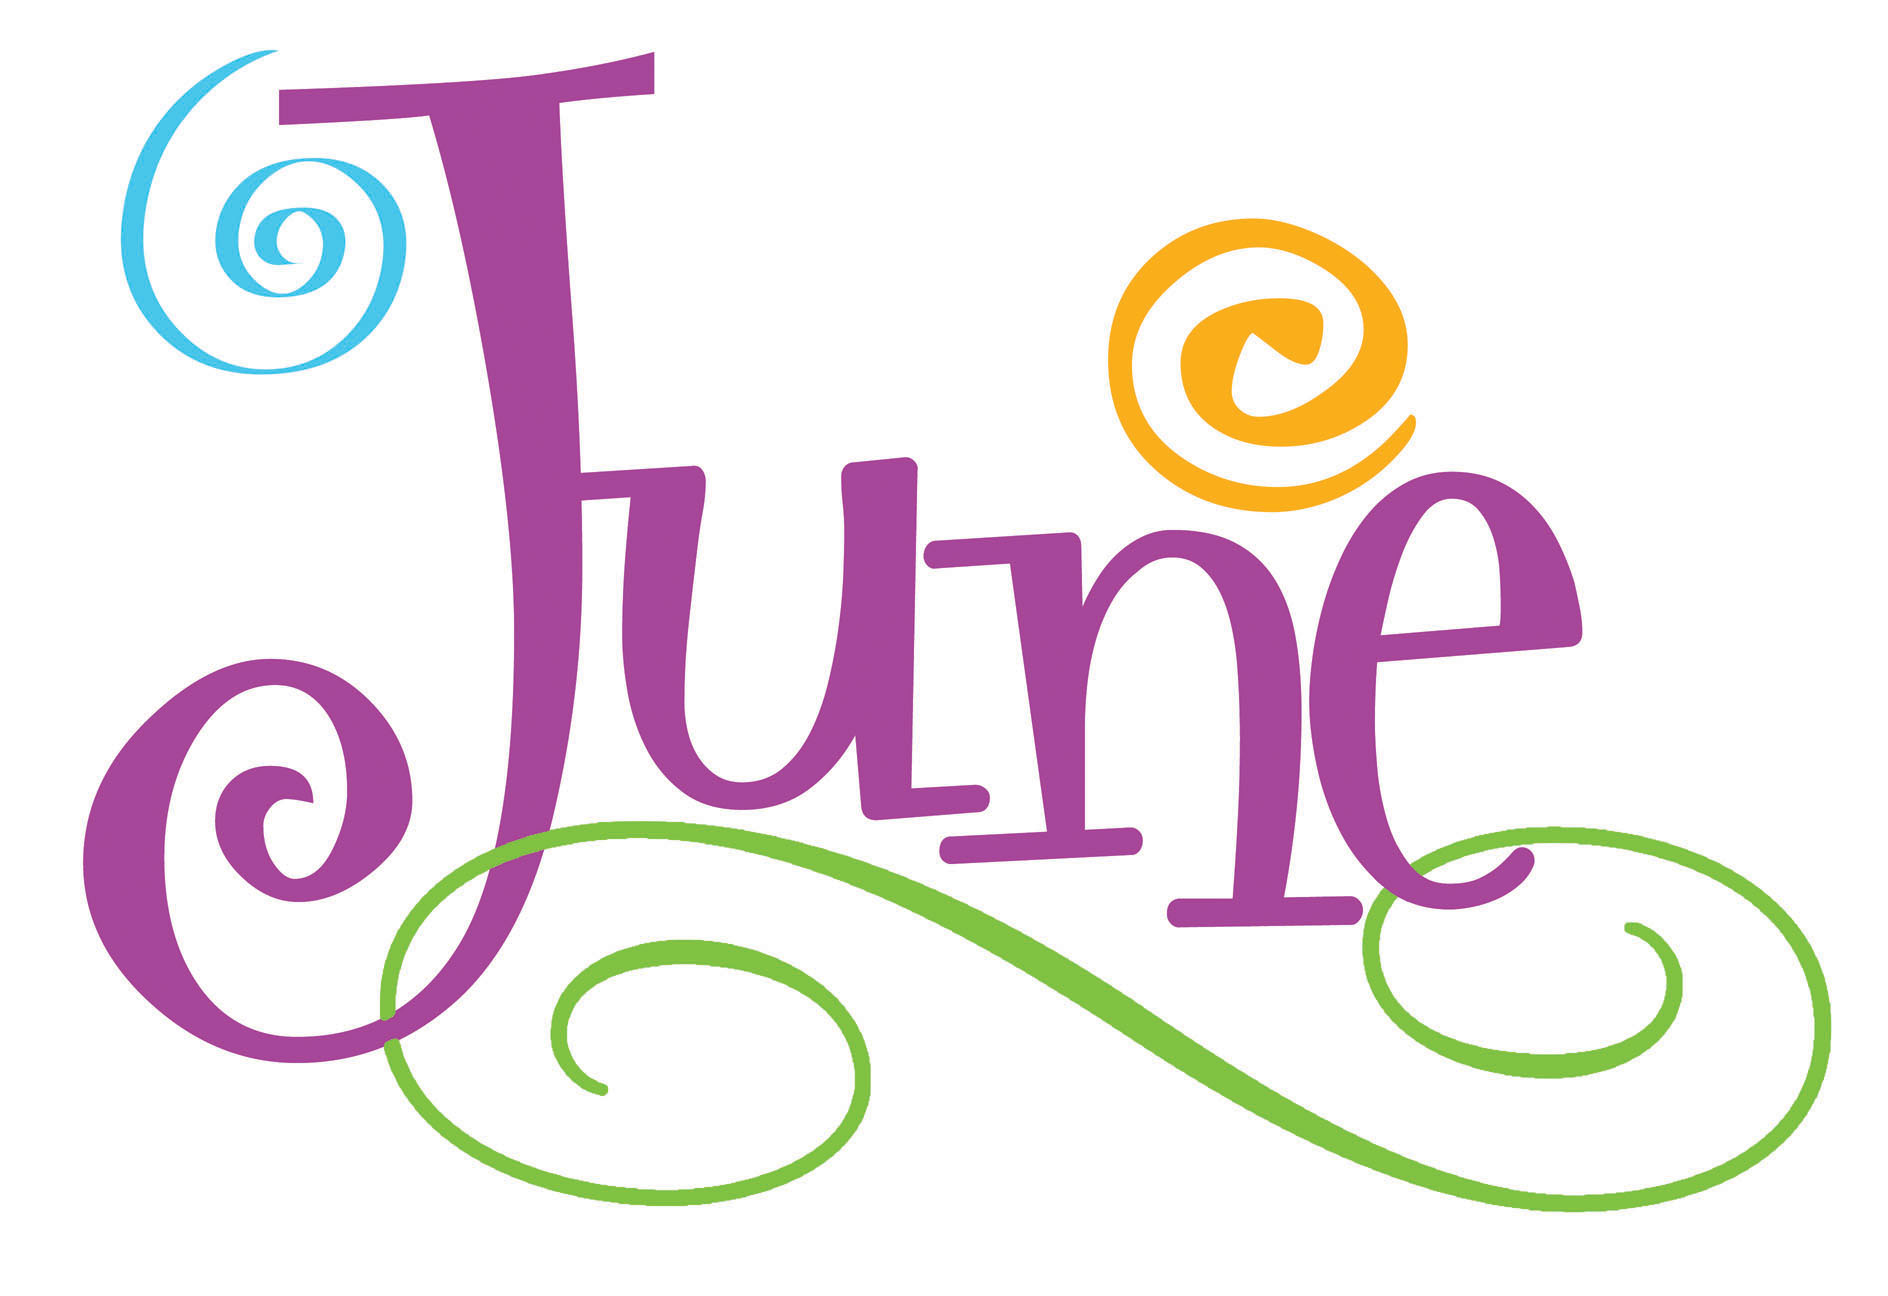 June calendar theme clipart clipart royalty free download June Food Themes | Still Learning Something New clipart royalty free download